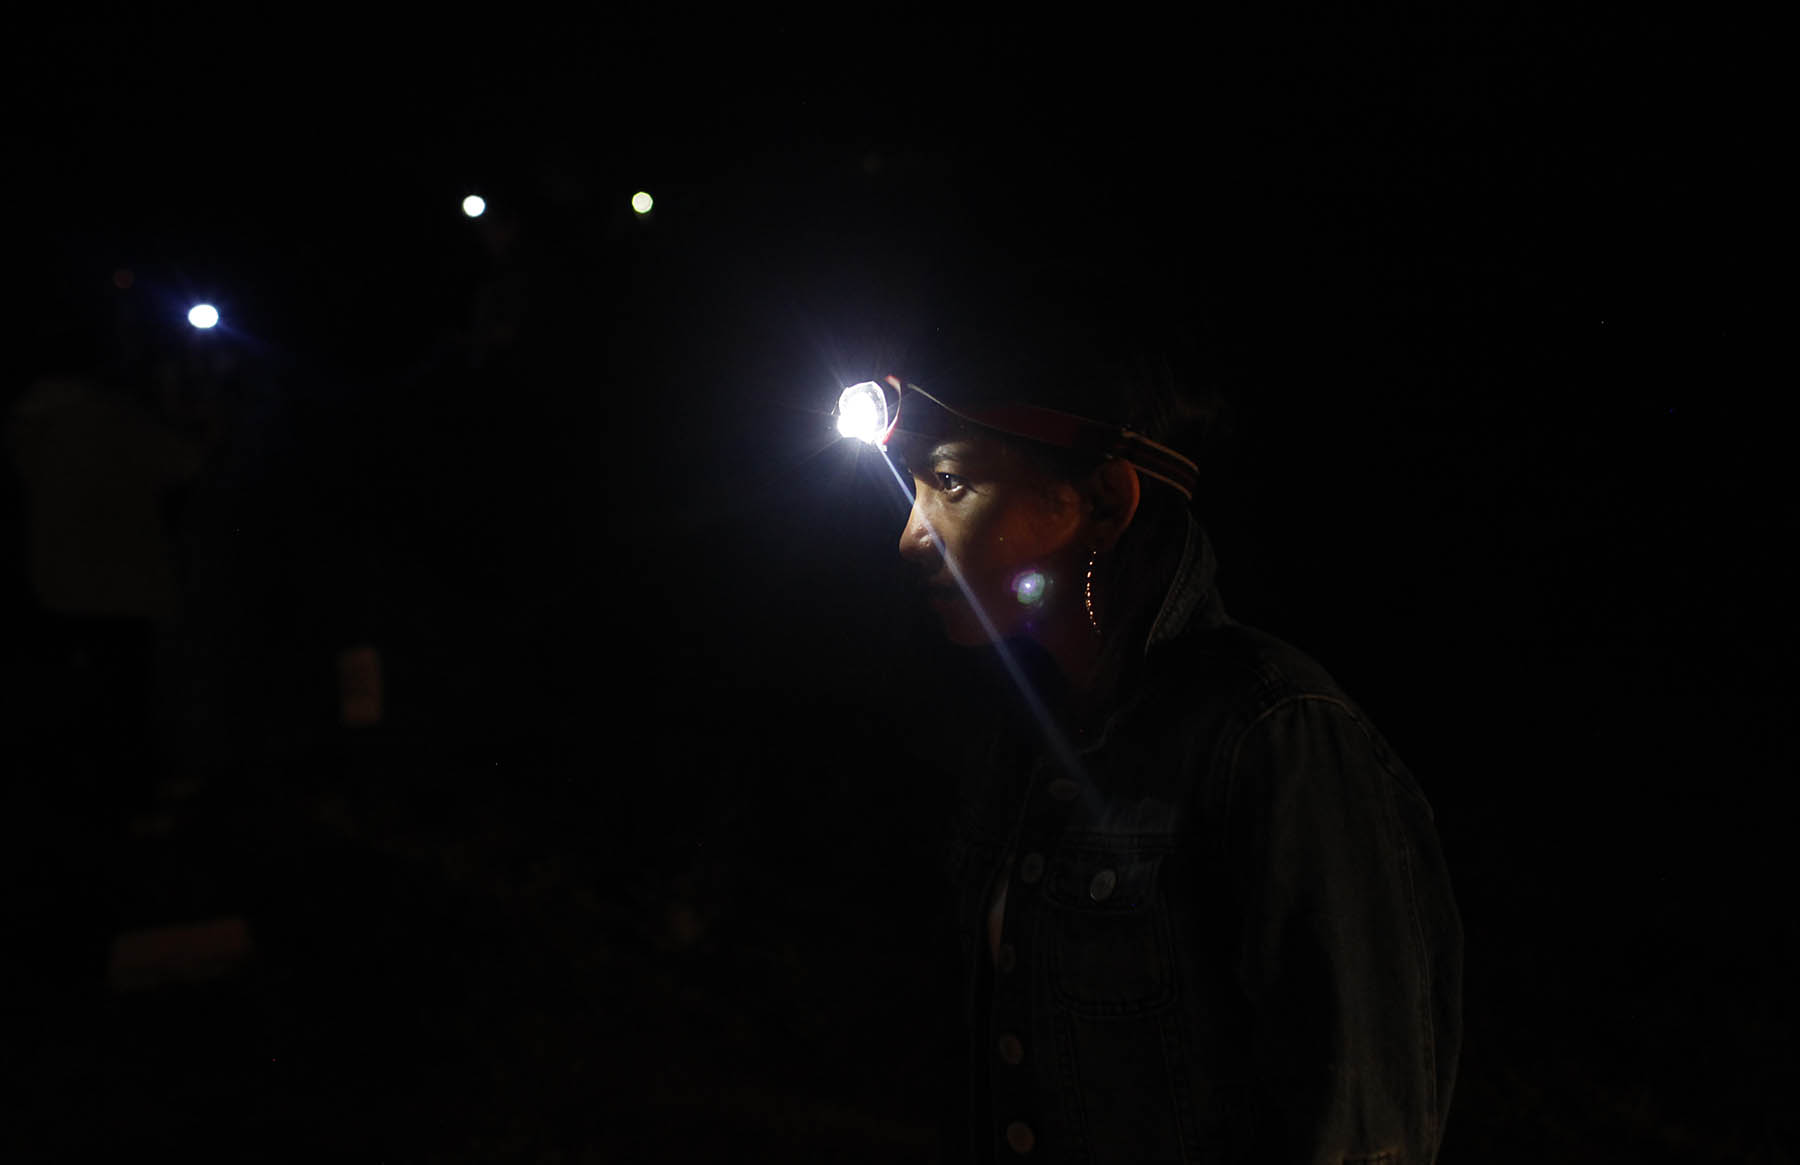 Sapana Gurung, 14, uses her headlamp to light the way at night at their campsite in Hooper, Colo. on Sept. 2, 2017.  In the background are other headlamps used by the girls.